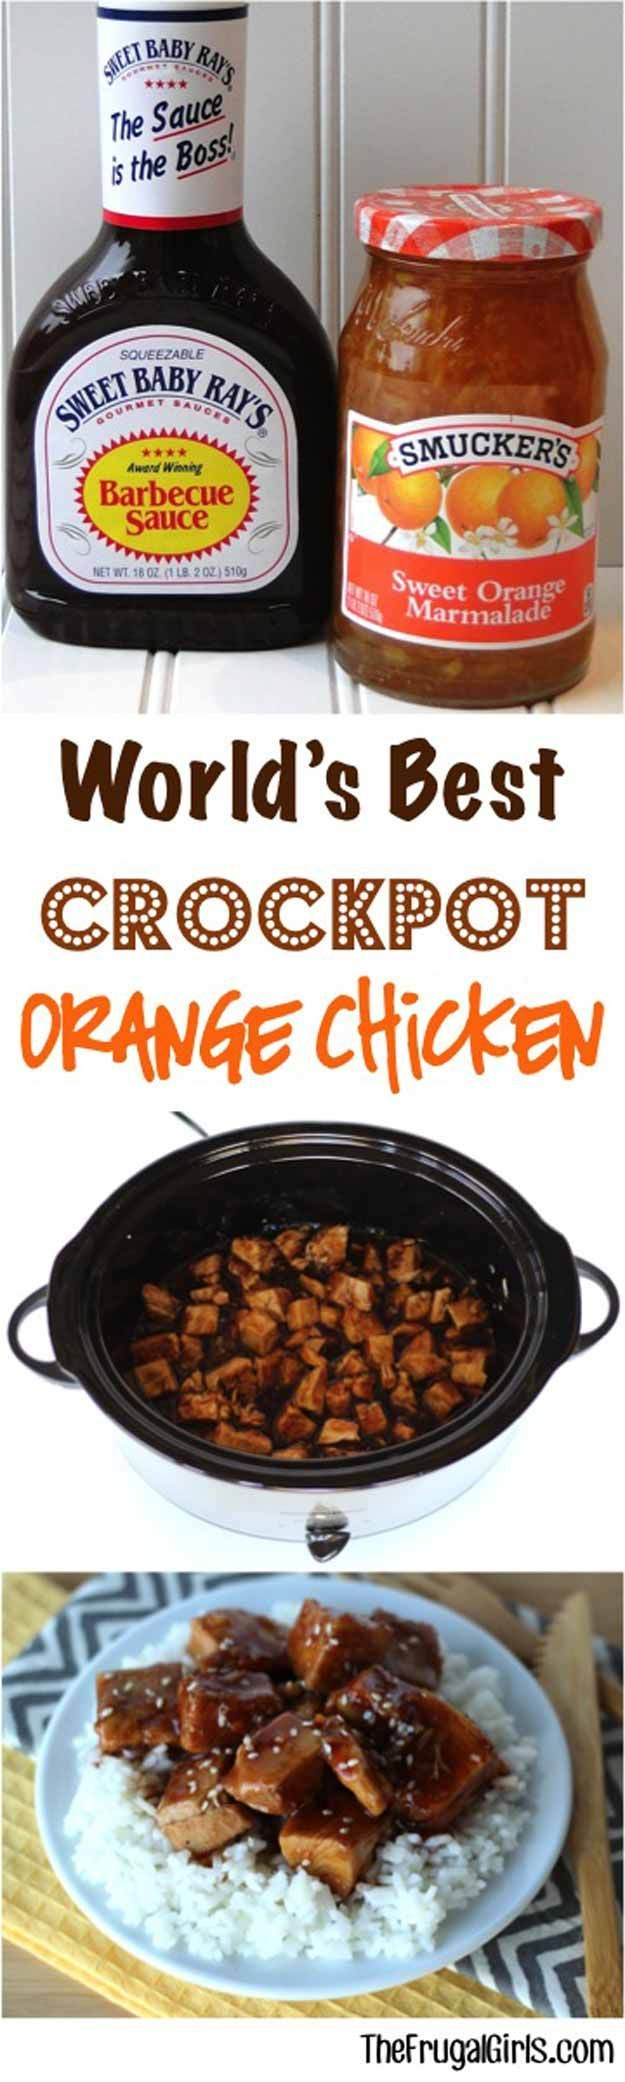 Orange Chicken Recipe   11 Succulent Chicken Crockpot Recipes To Make For Dinner   Super Tasty And Simple Recipe The Whole Family Will Love! by Pioneer Settler at http://pioneersettler.com/chicken-crockpot-recipes/